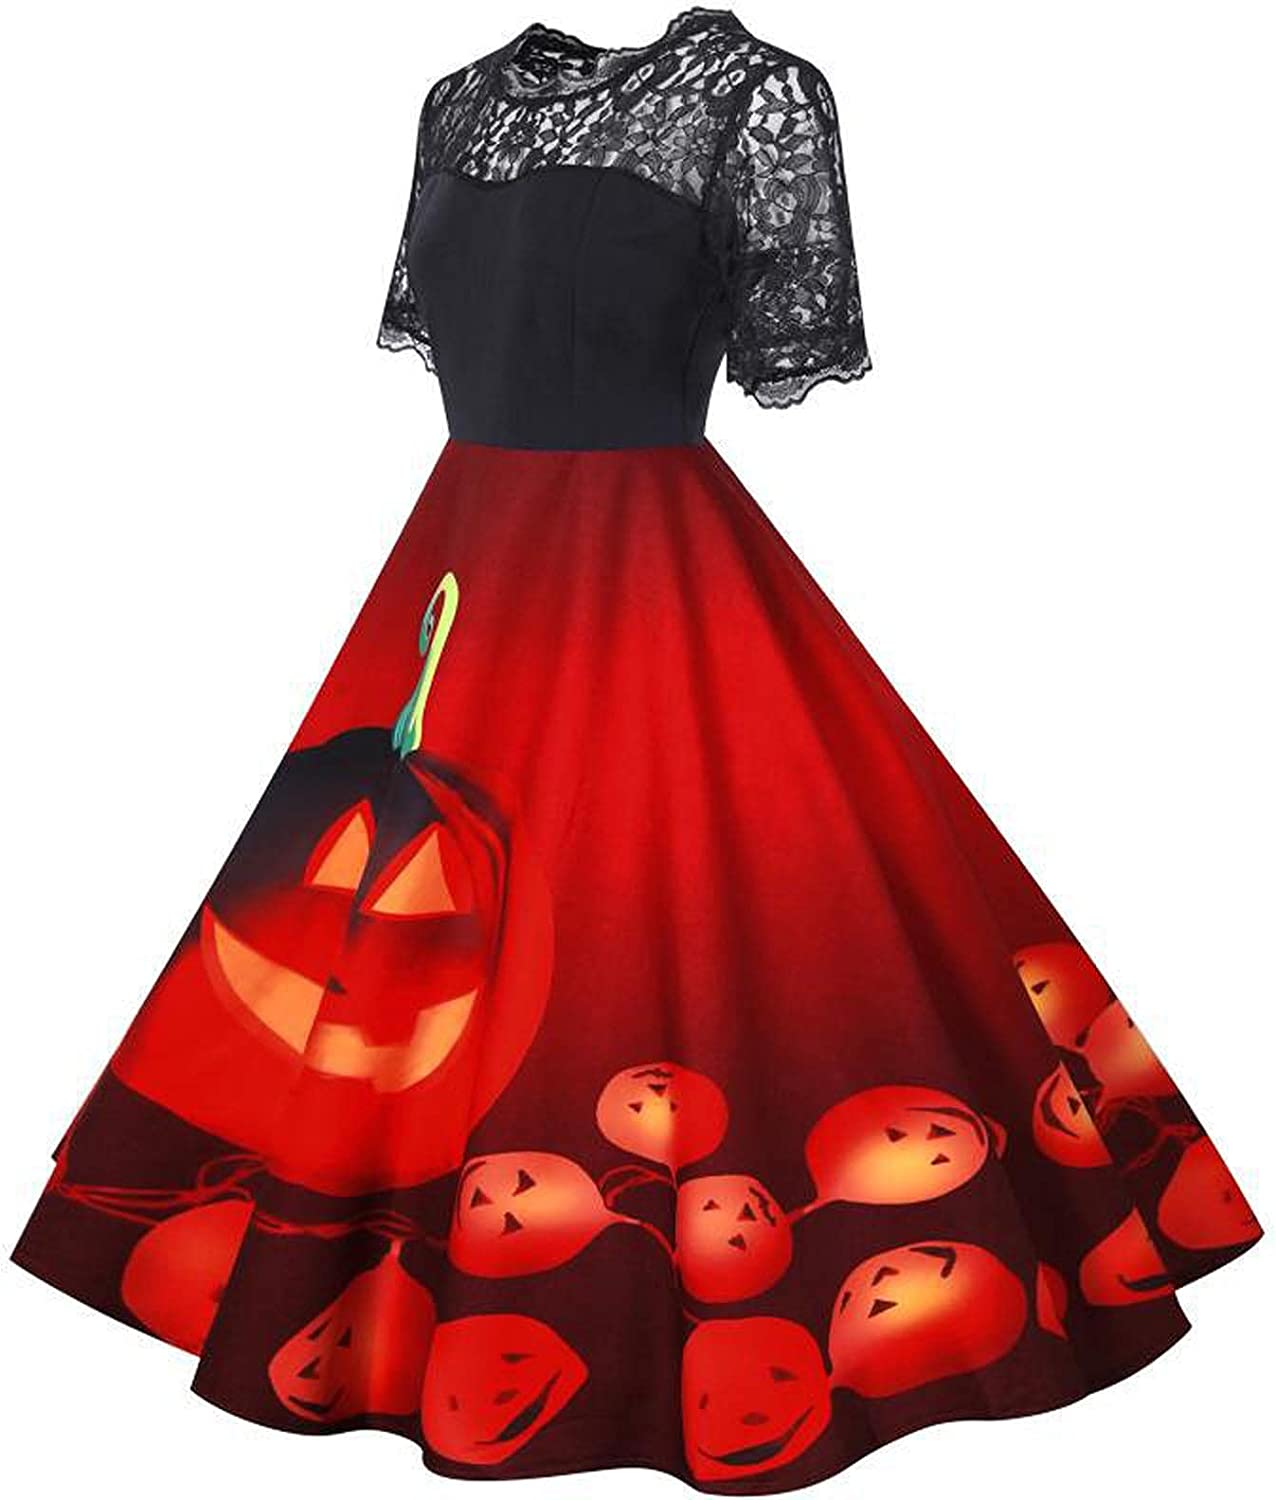 Womens Dresses Halloween Lace Short Sleeve Pumpkin Head Printed Patchwork Swing Party Prom Novely Vintage Midi Dress